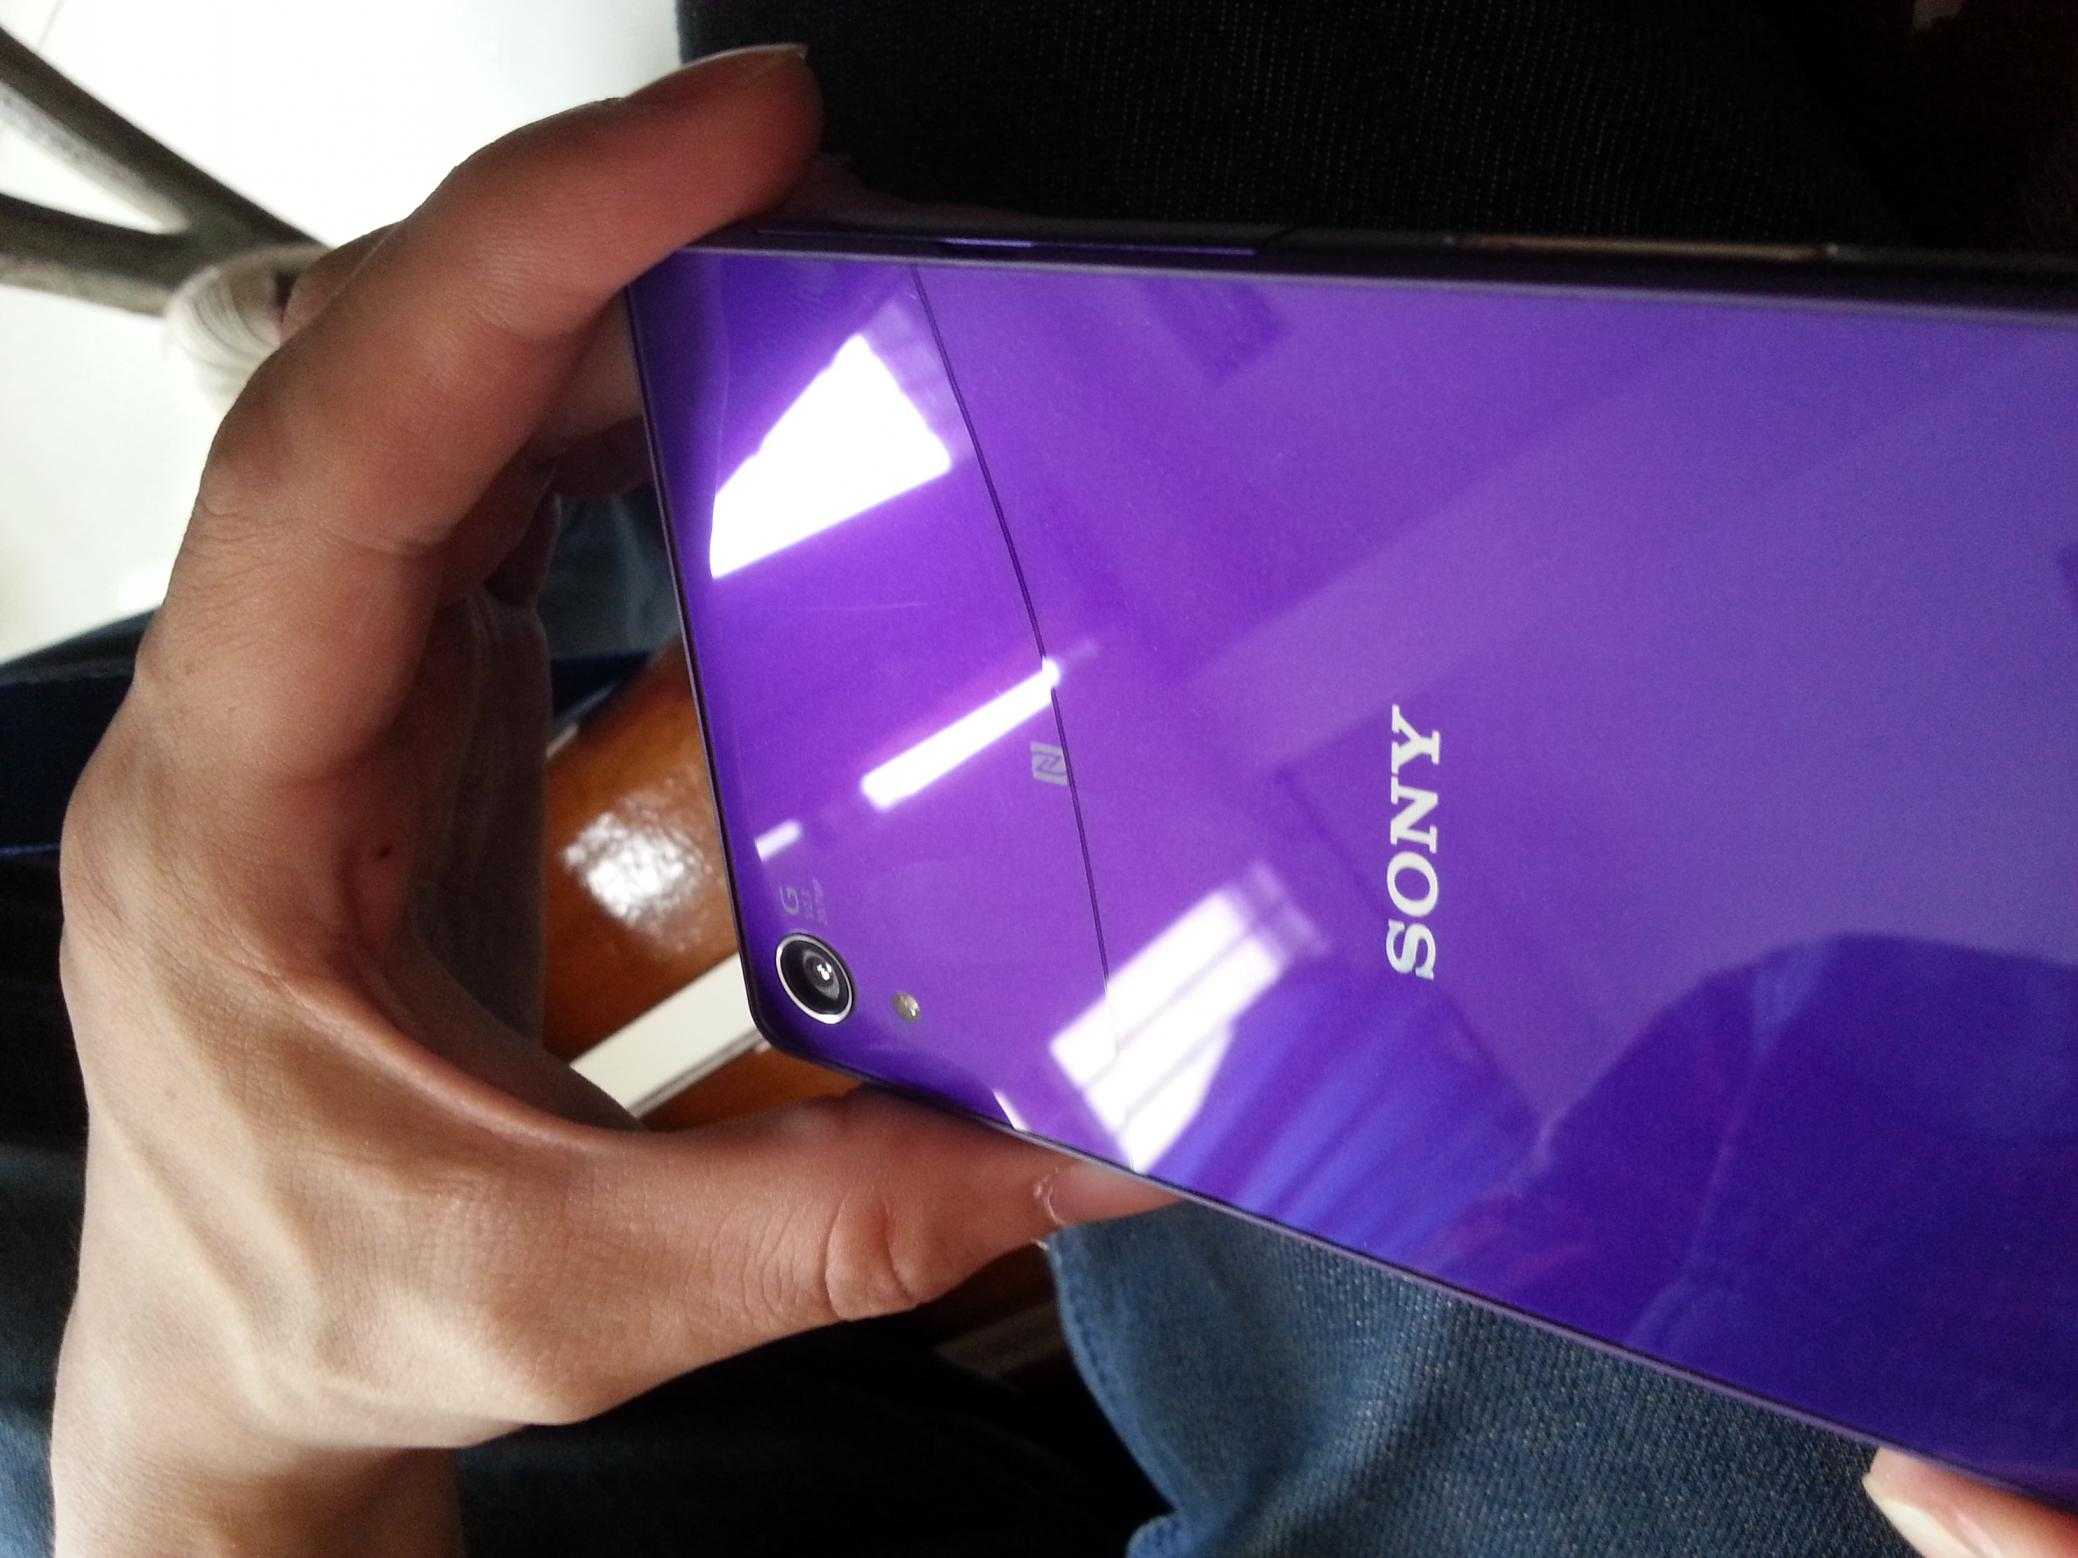 Xperia Z2 self cracking screen issue